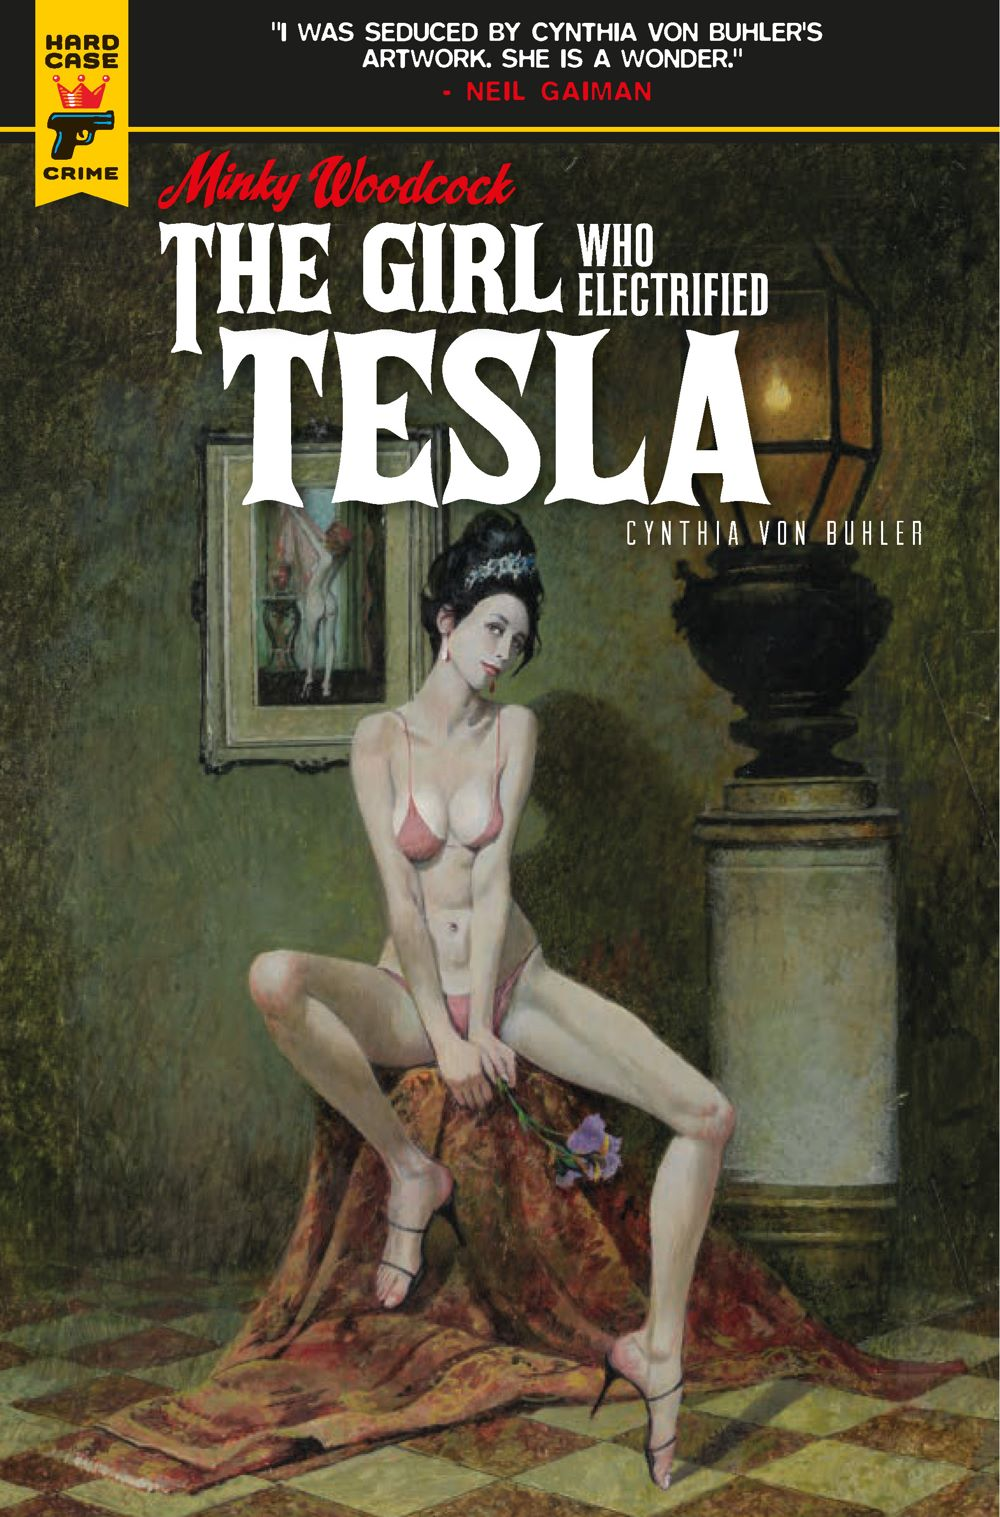 Minky-Woodcock-Cover-A-Robert-McGinnis Minky Woodcock returns in THE GIRL WHO ELECTRIFIED TESLA